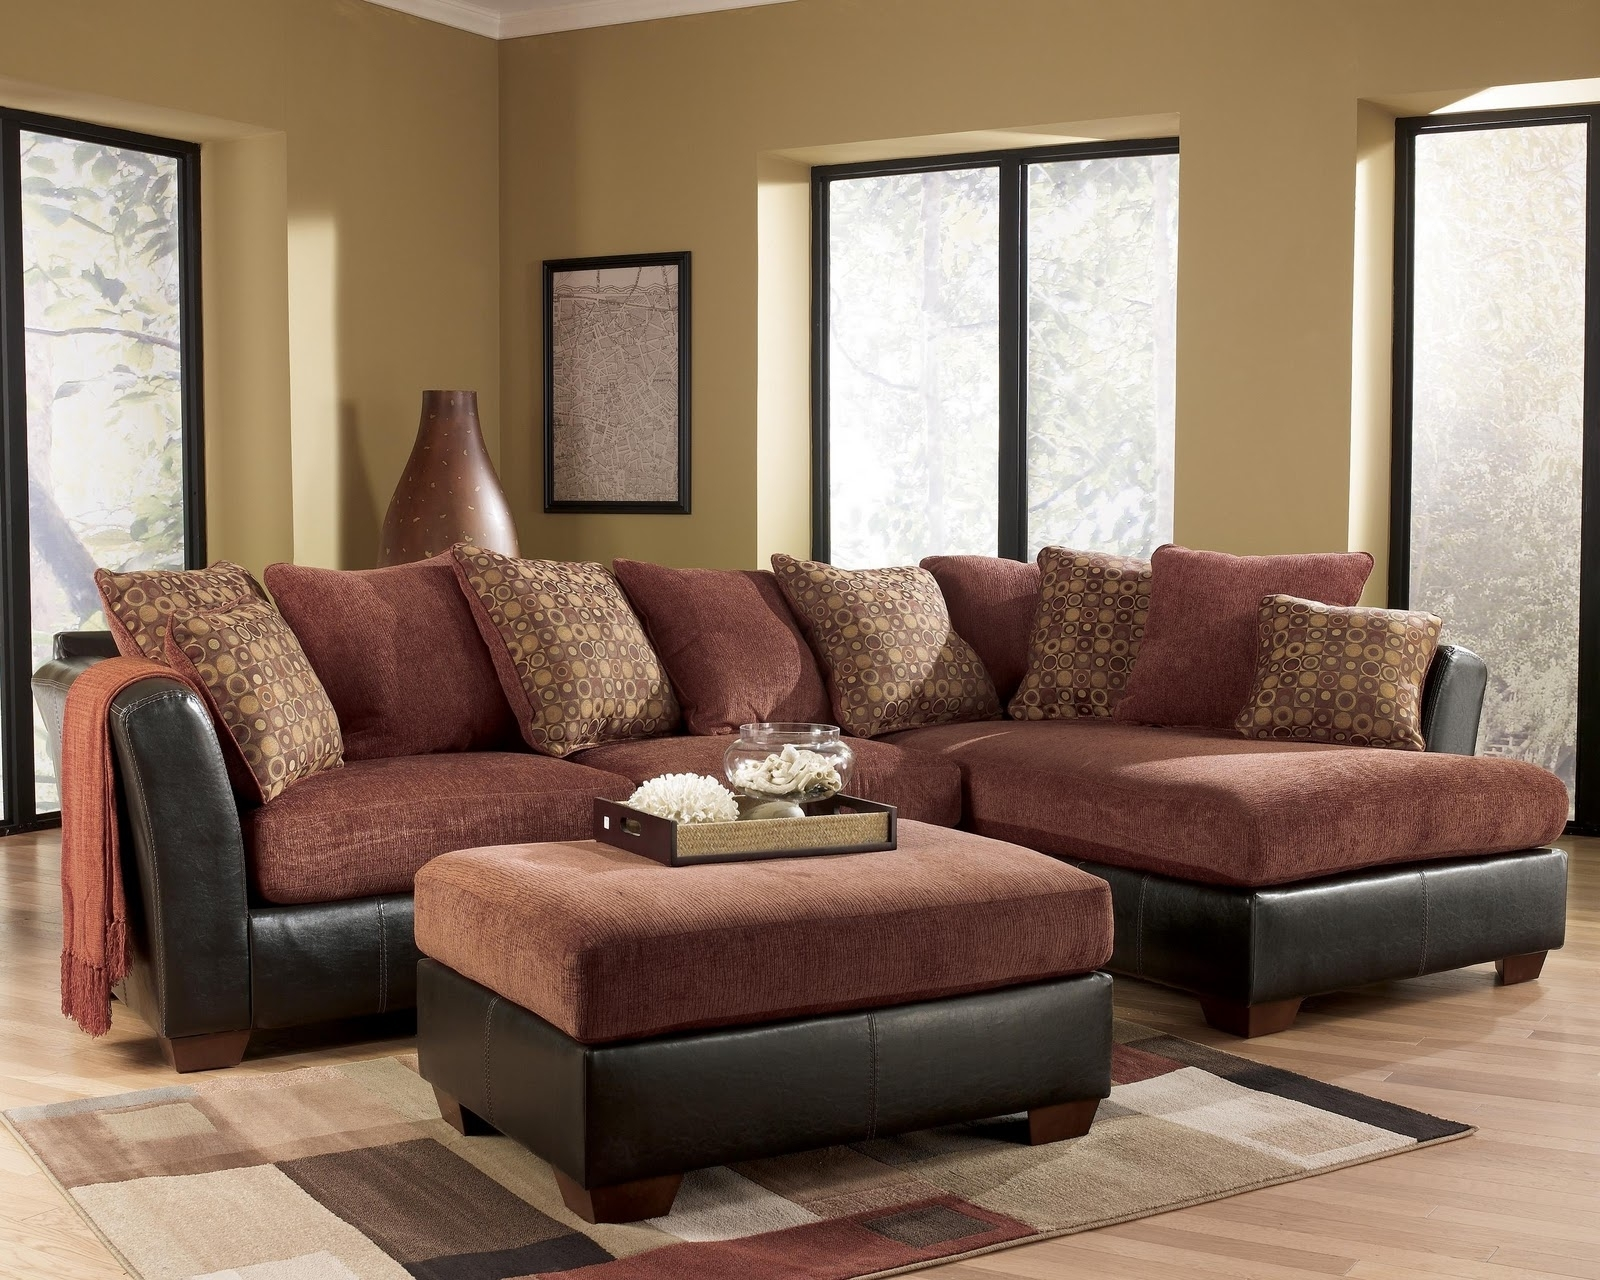 10X8 Sectional Sofas Regarding Preferred Awesome Ashley Furniture Sectional Chocolate Pictures (Gallery 16 of 20)